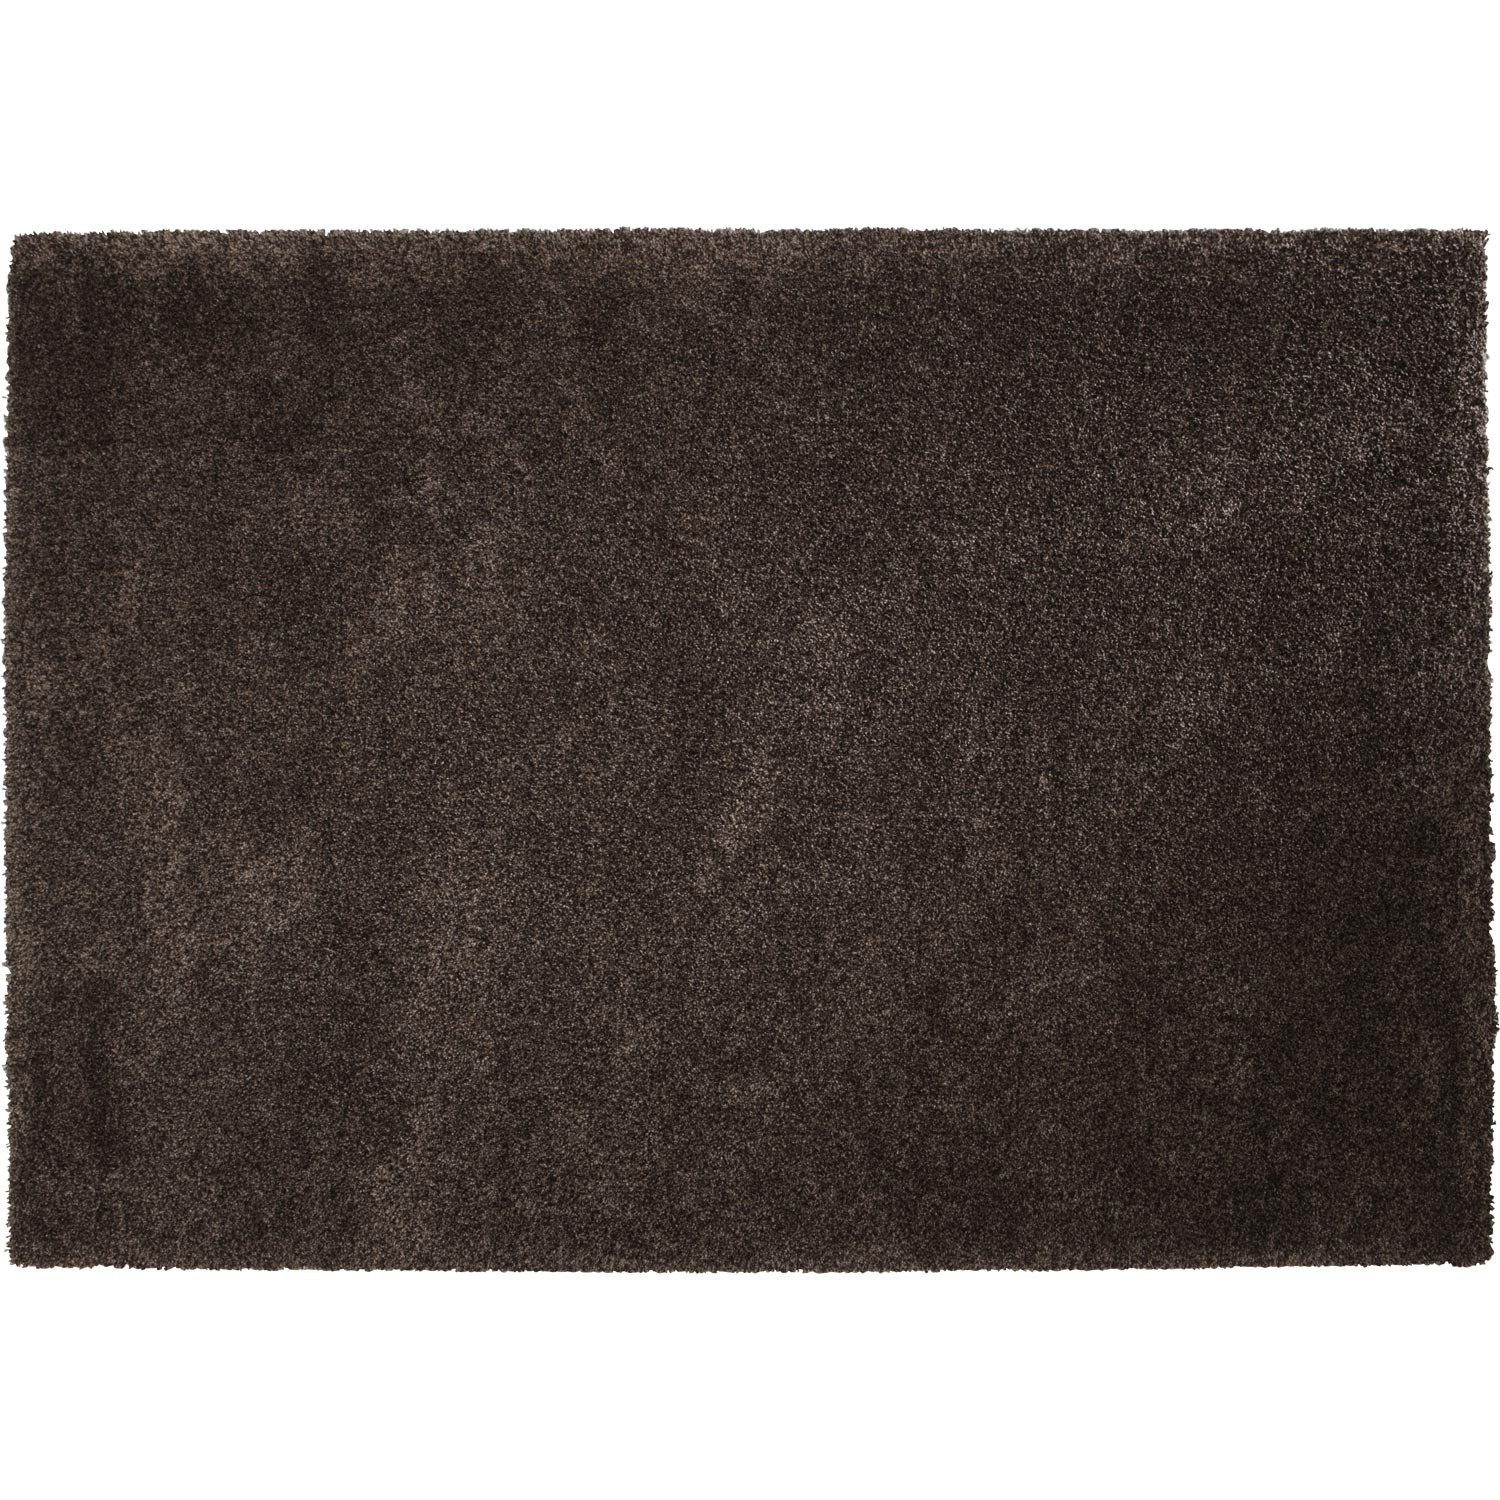 tapis marron shaggy lizzy x cm leroy merlin. Black Bedroom Furniture Sets. Home Design Ideas